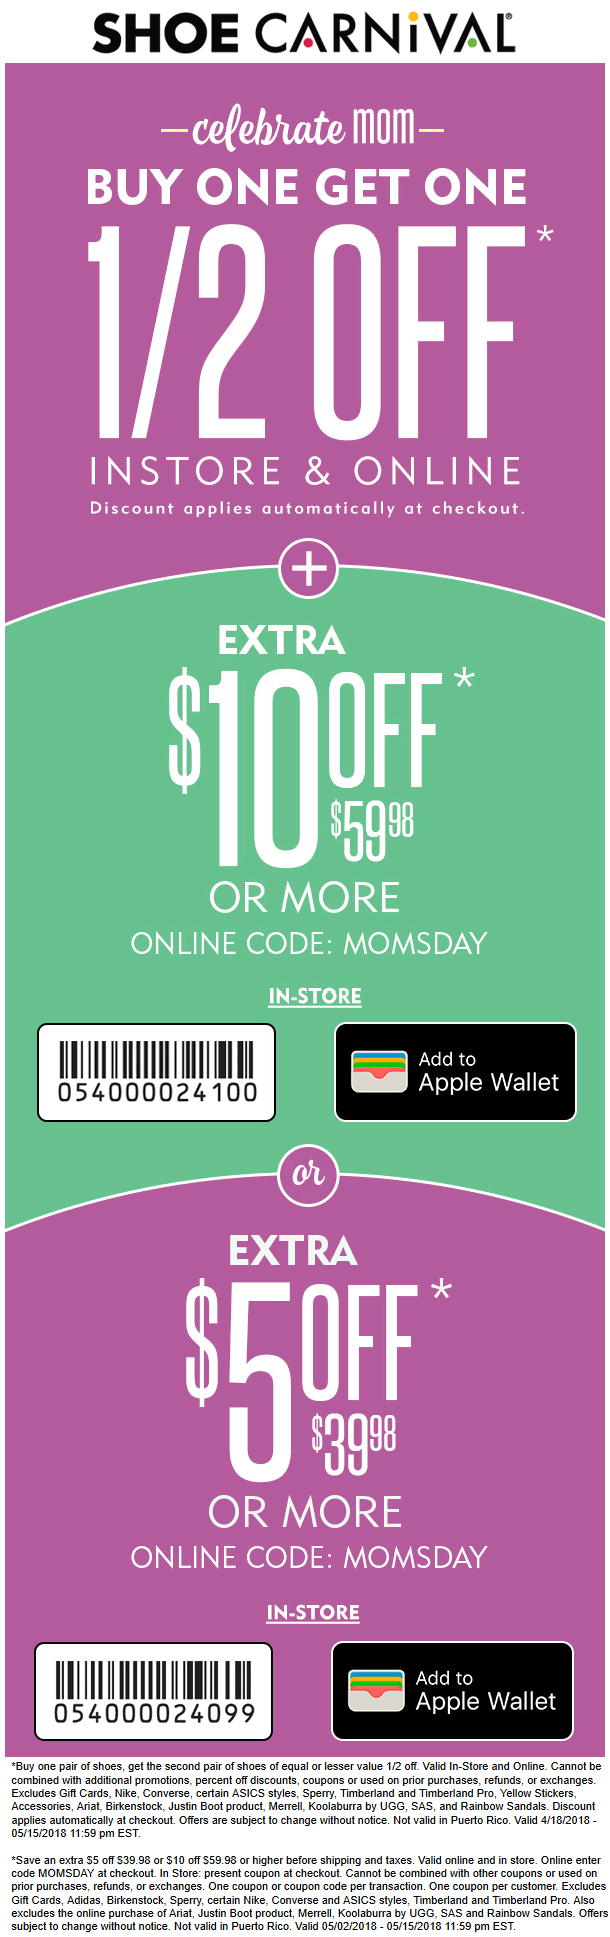 Shoe Carnival Coupon October 2018 $10 off $60 + 2nd pair 50% off today at Shoe Carnival, or online via promo code MOMSDAY